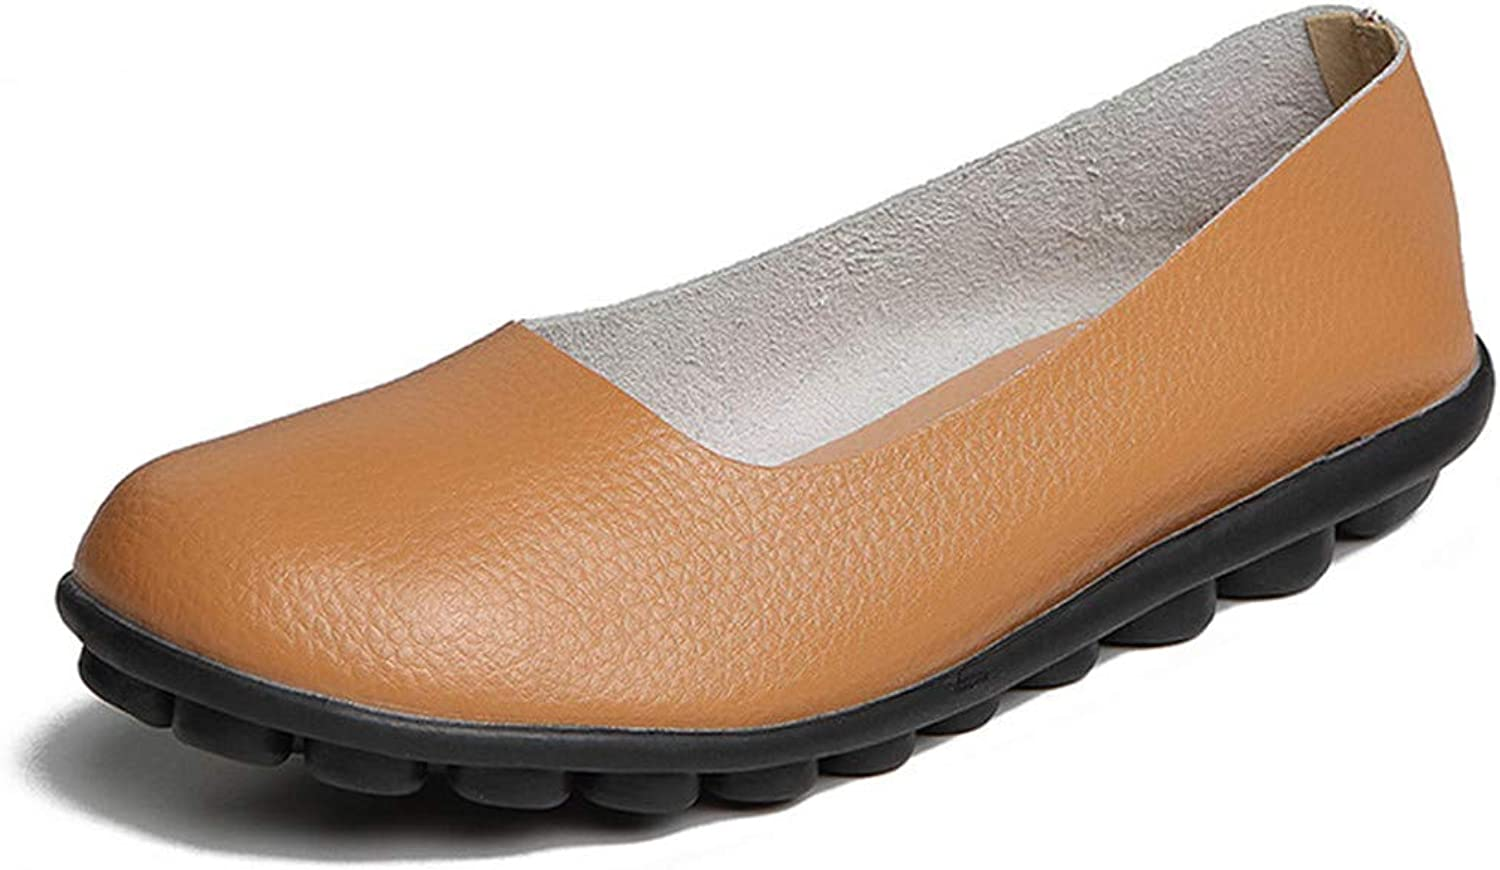 NingYu Women Flats shoes Casual Women Loafers Genuine Leather Ballet Flat shoes